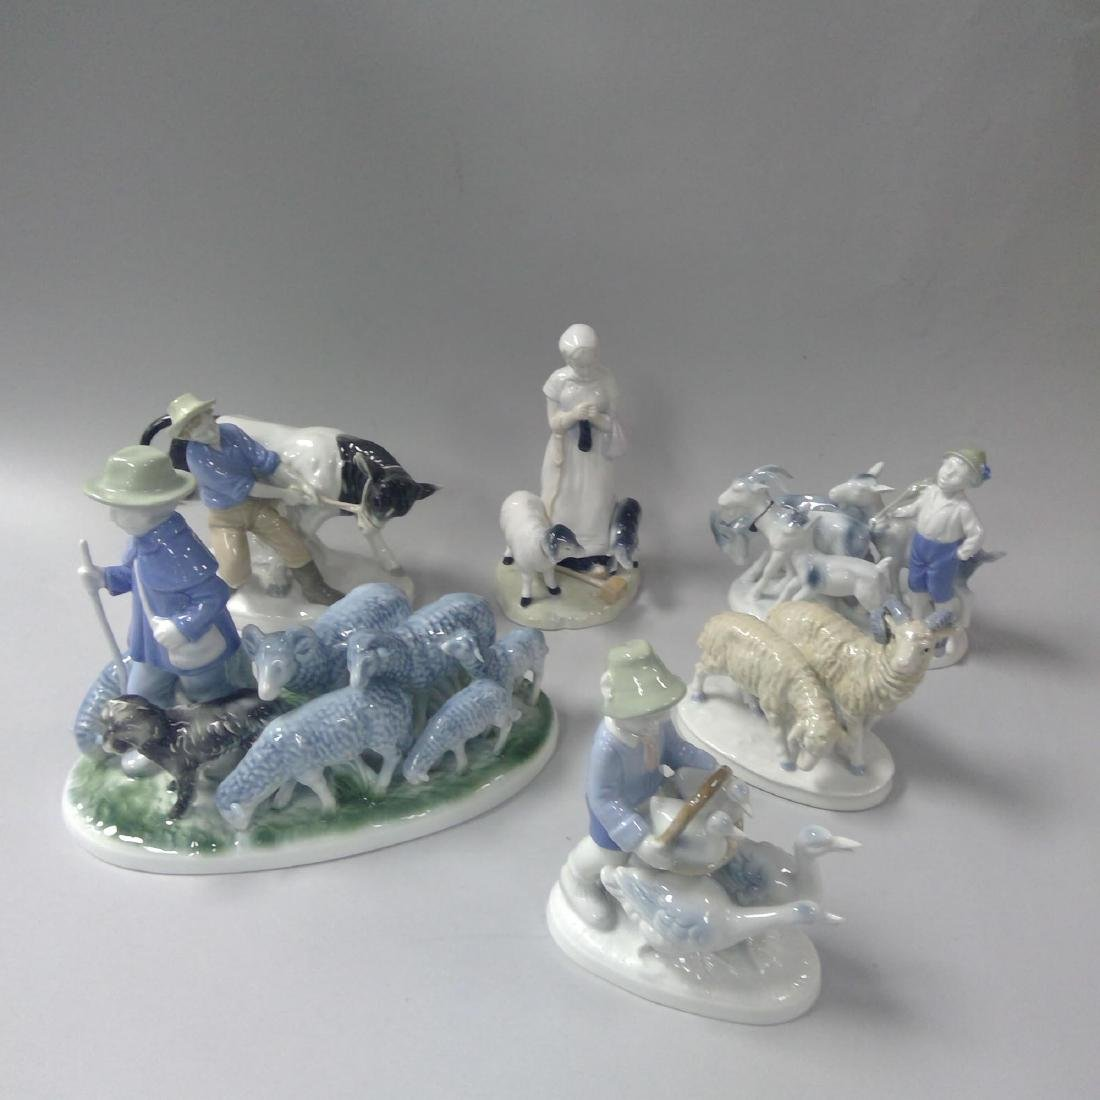 GROUP OF 6 GERMAN PORCELAIN FIGURINES